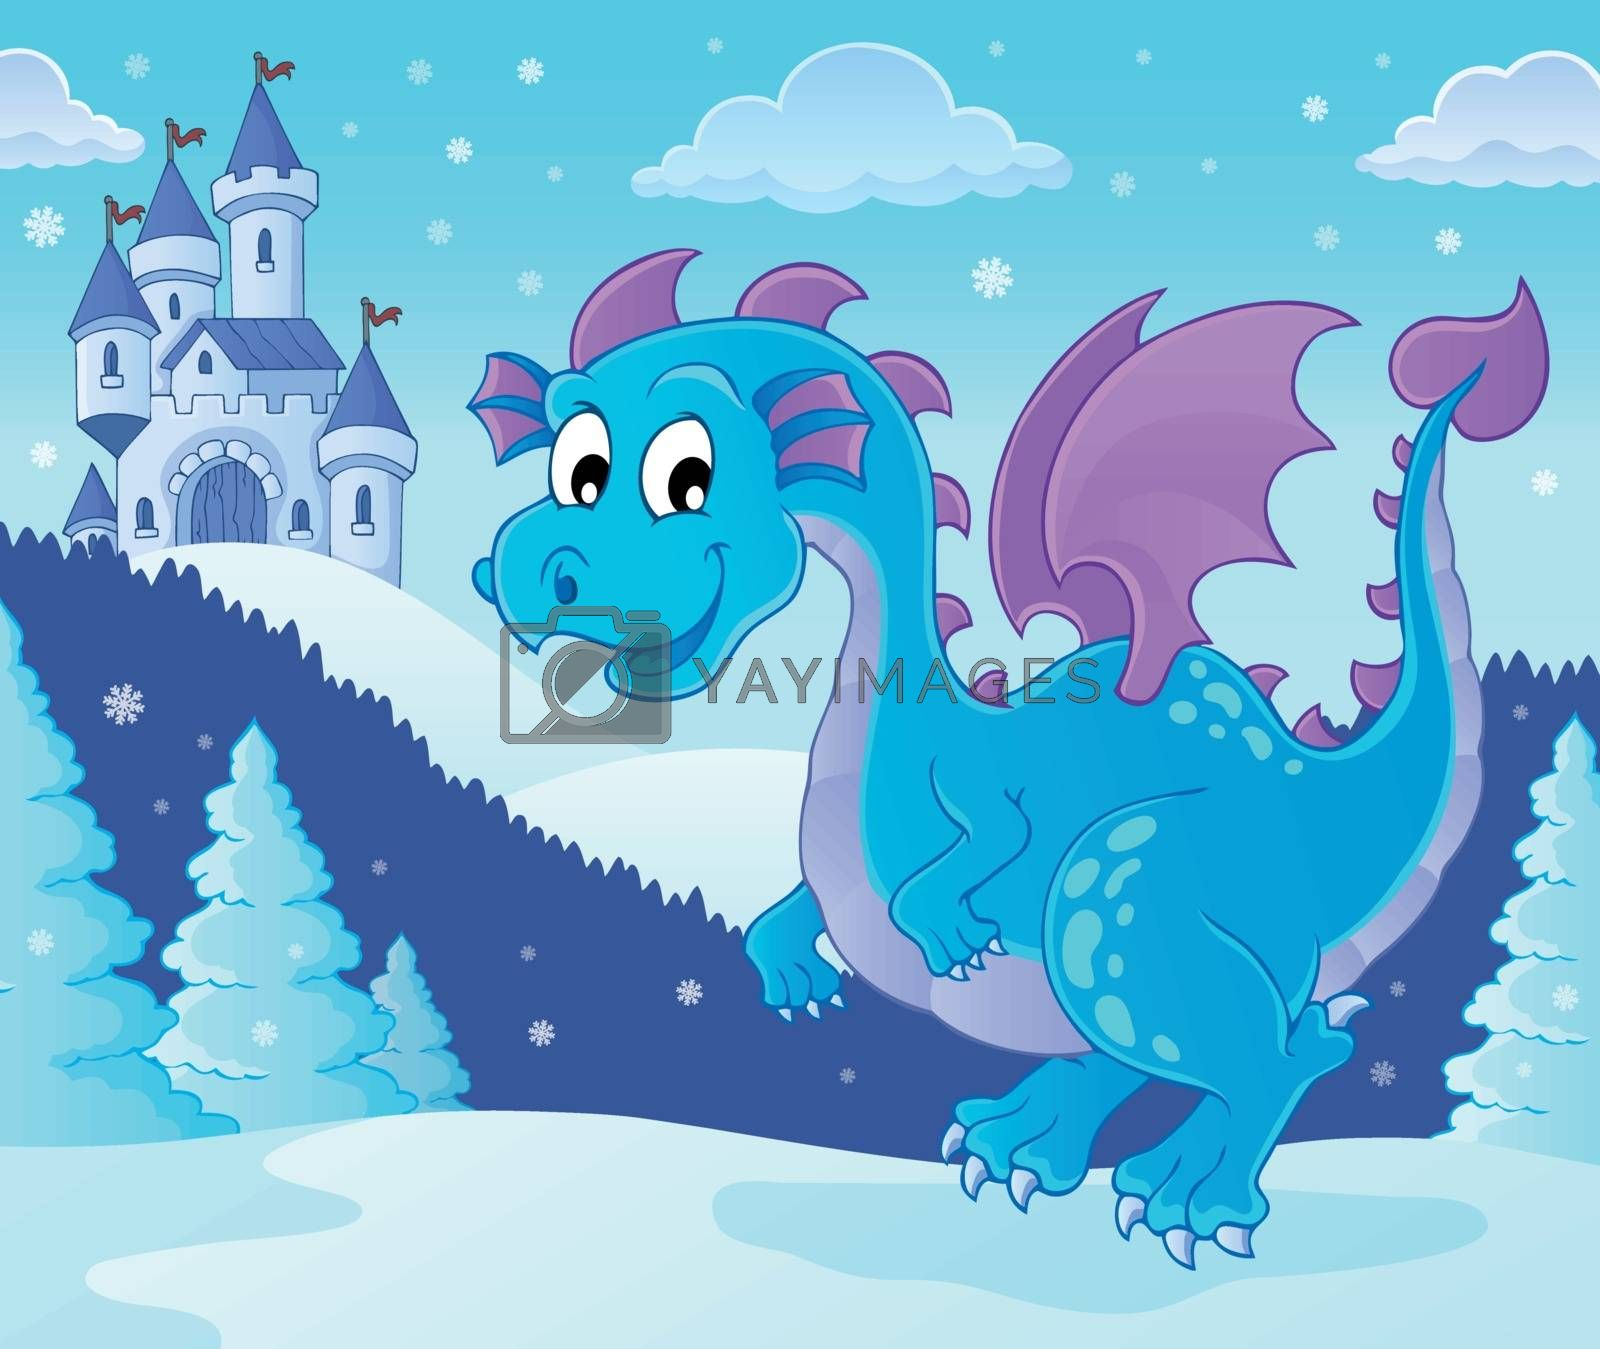 Winter dragon theme image 1 - eps10 vector illustration.